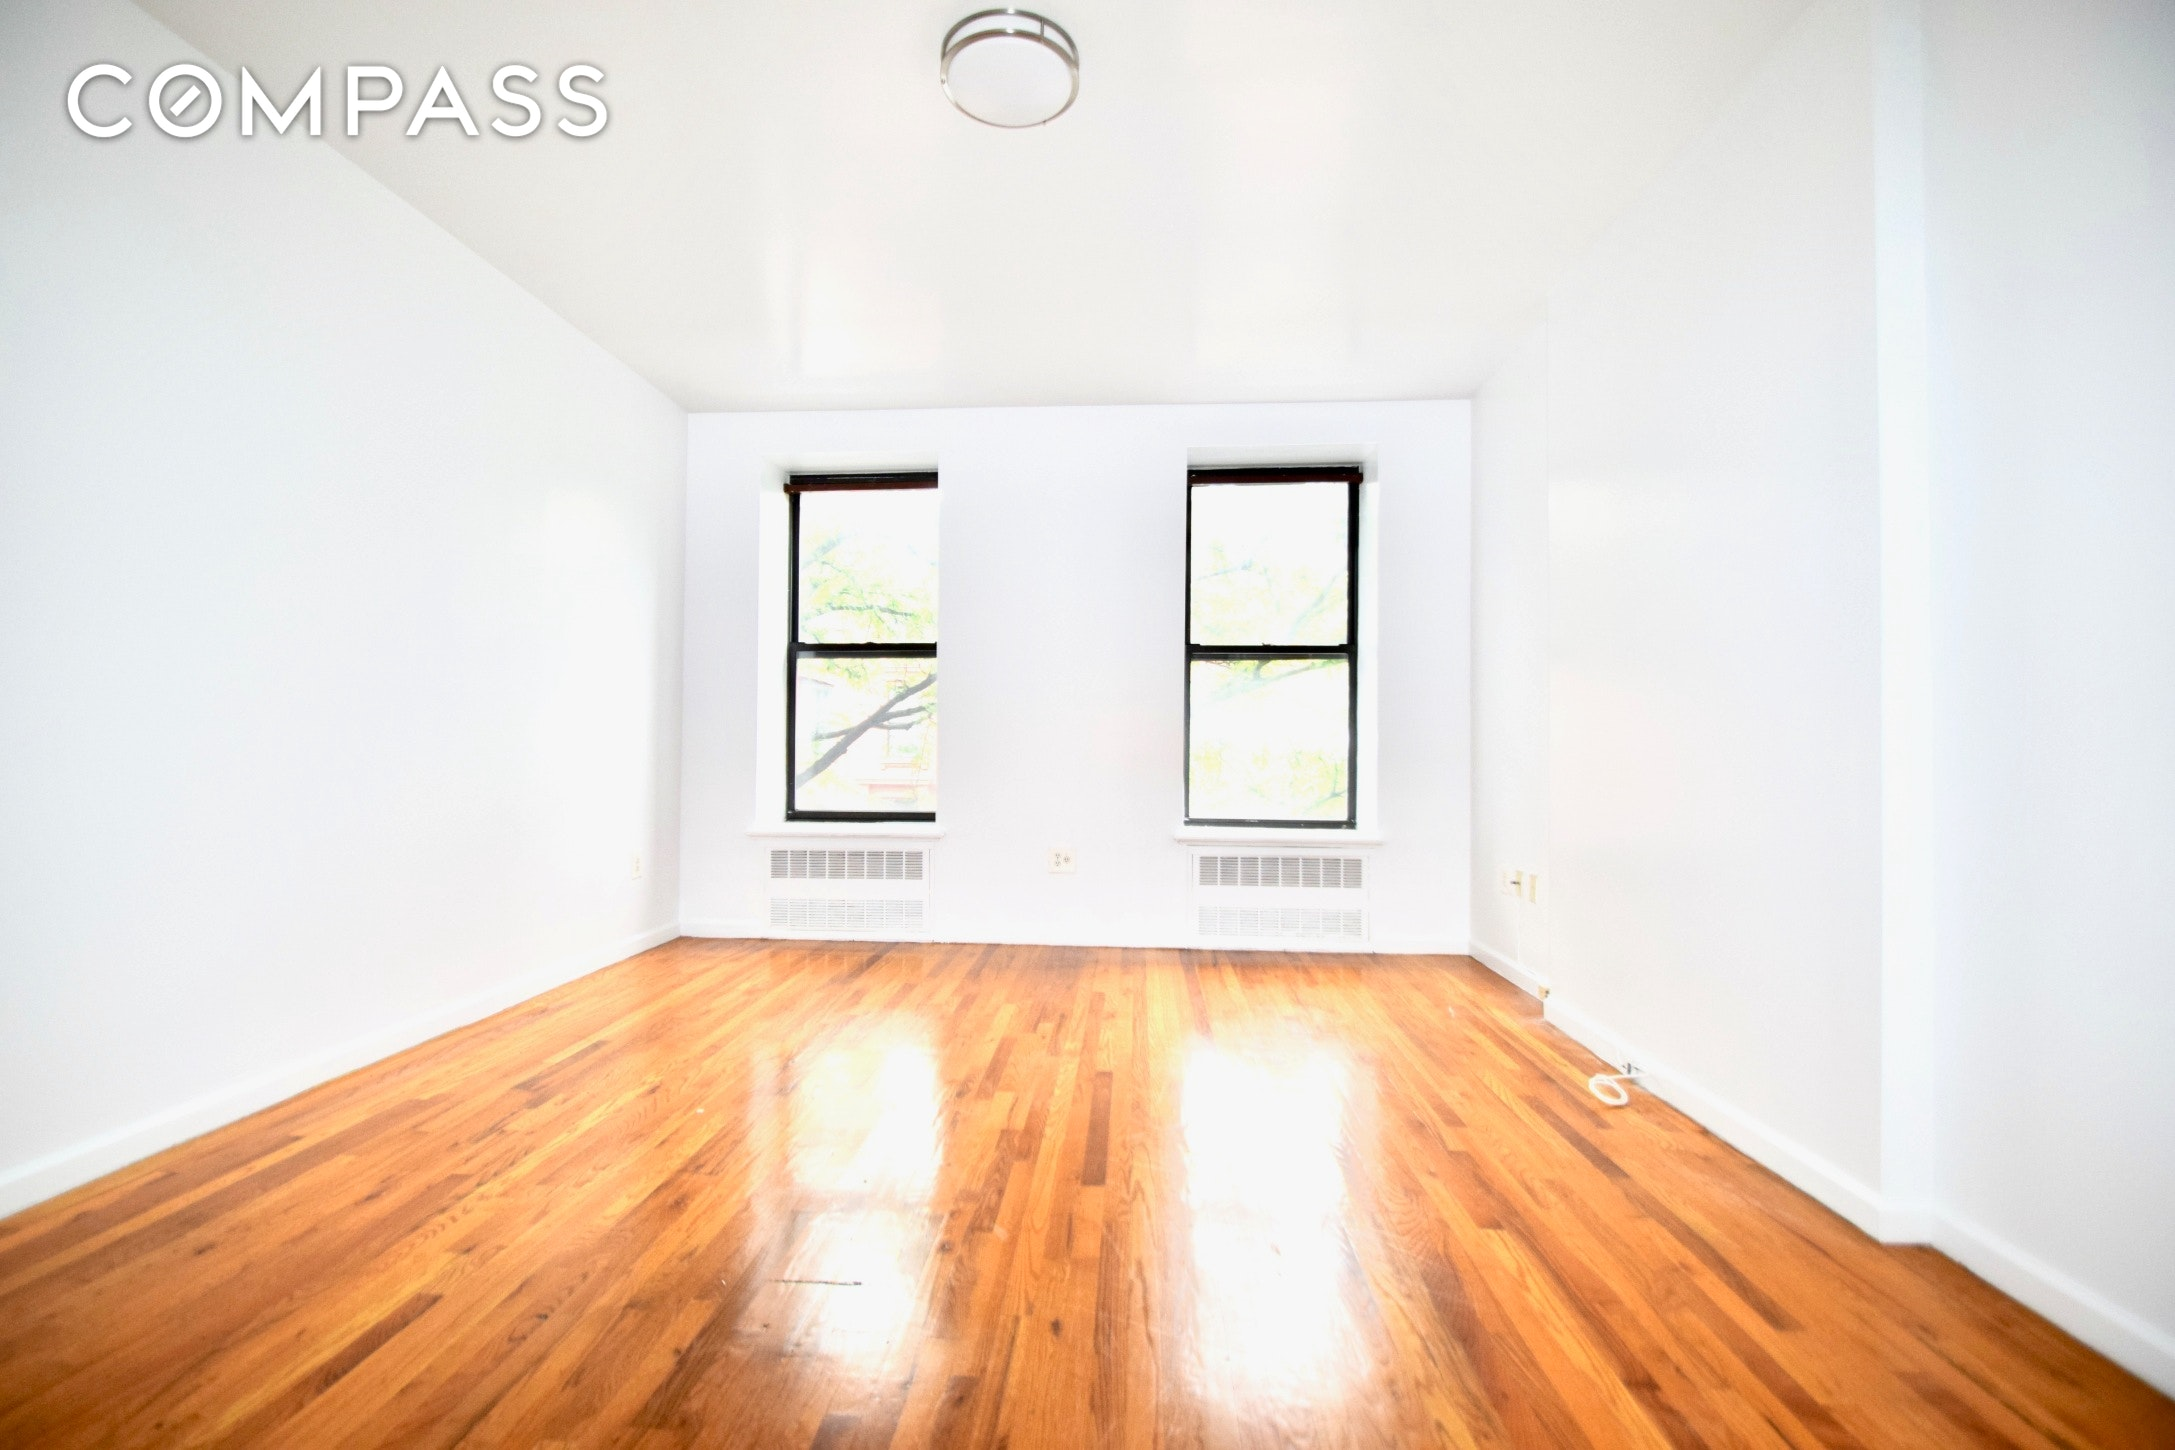 236 West 132nd Street, Apt 3, Manhattan, New York 10027